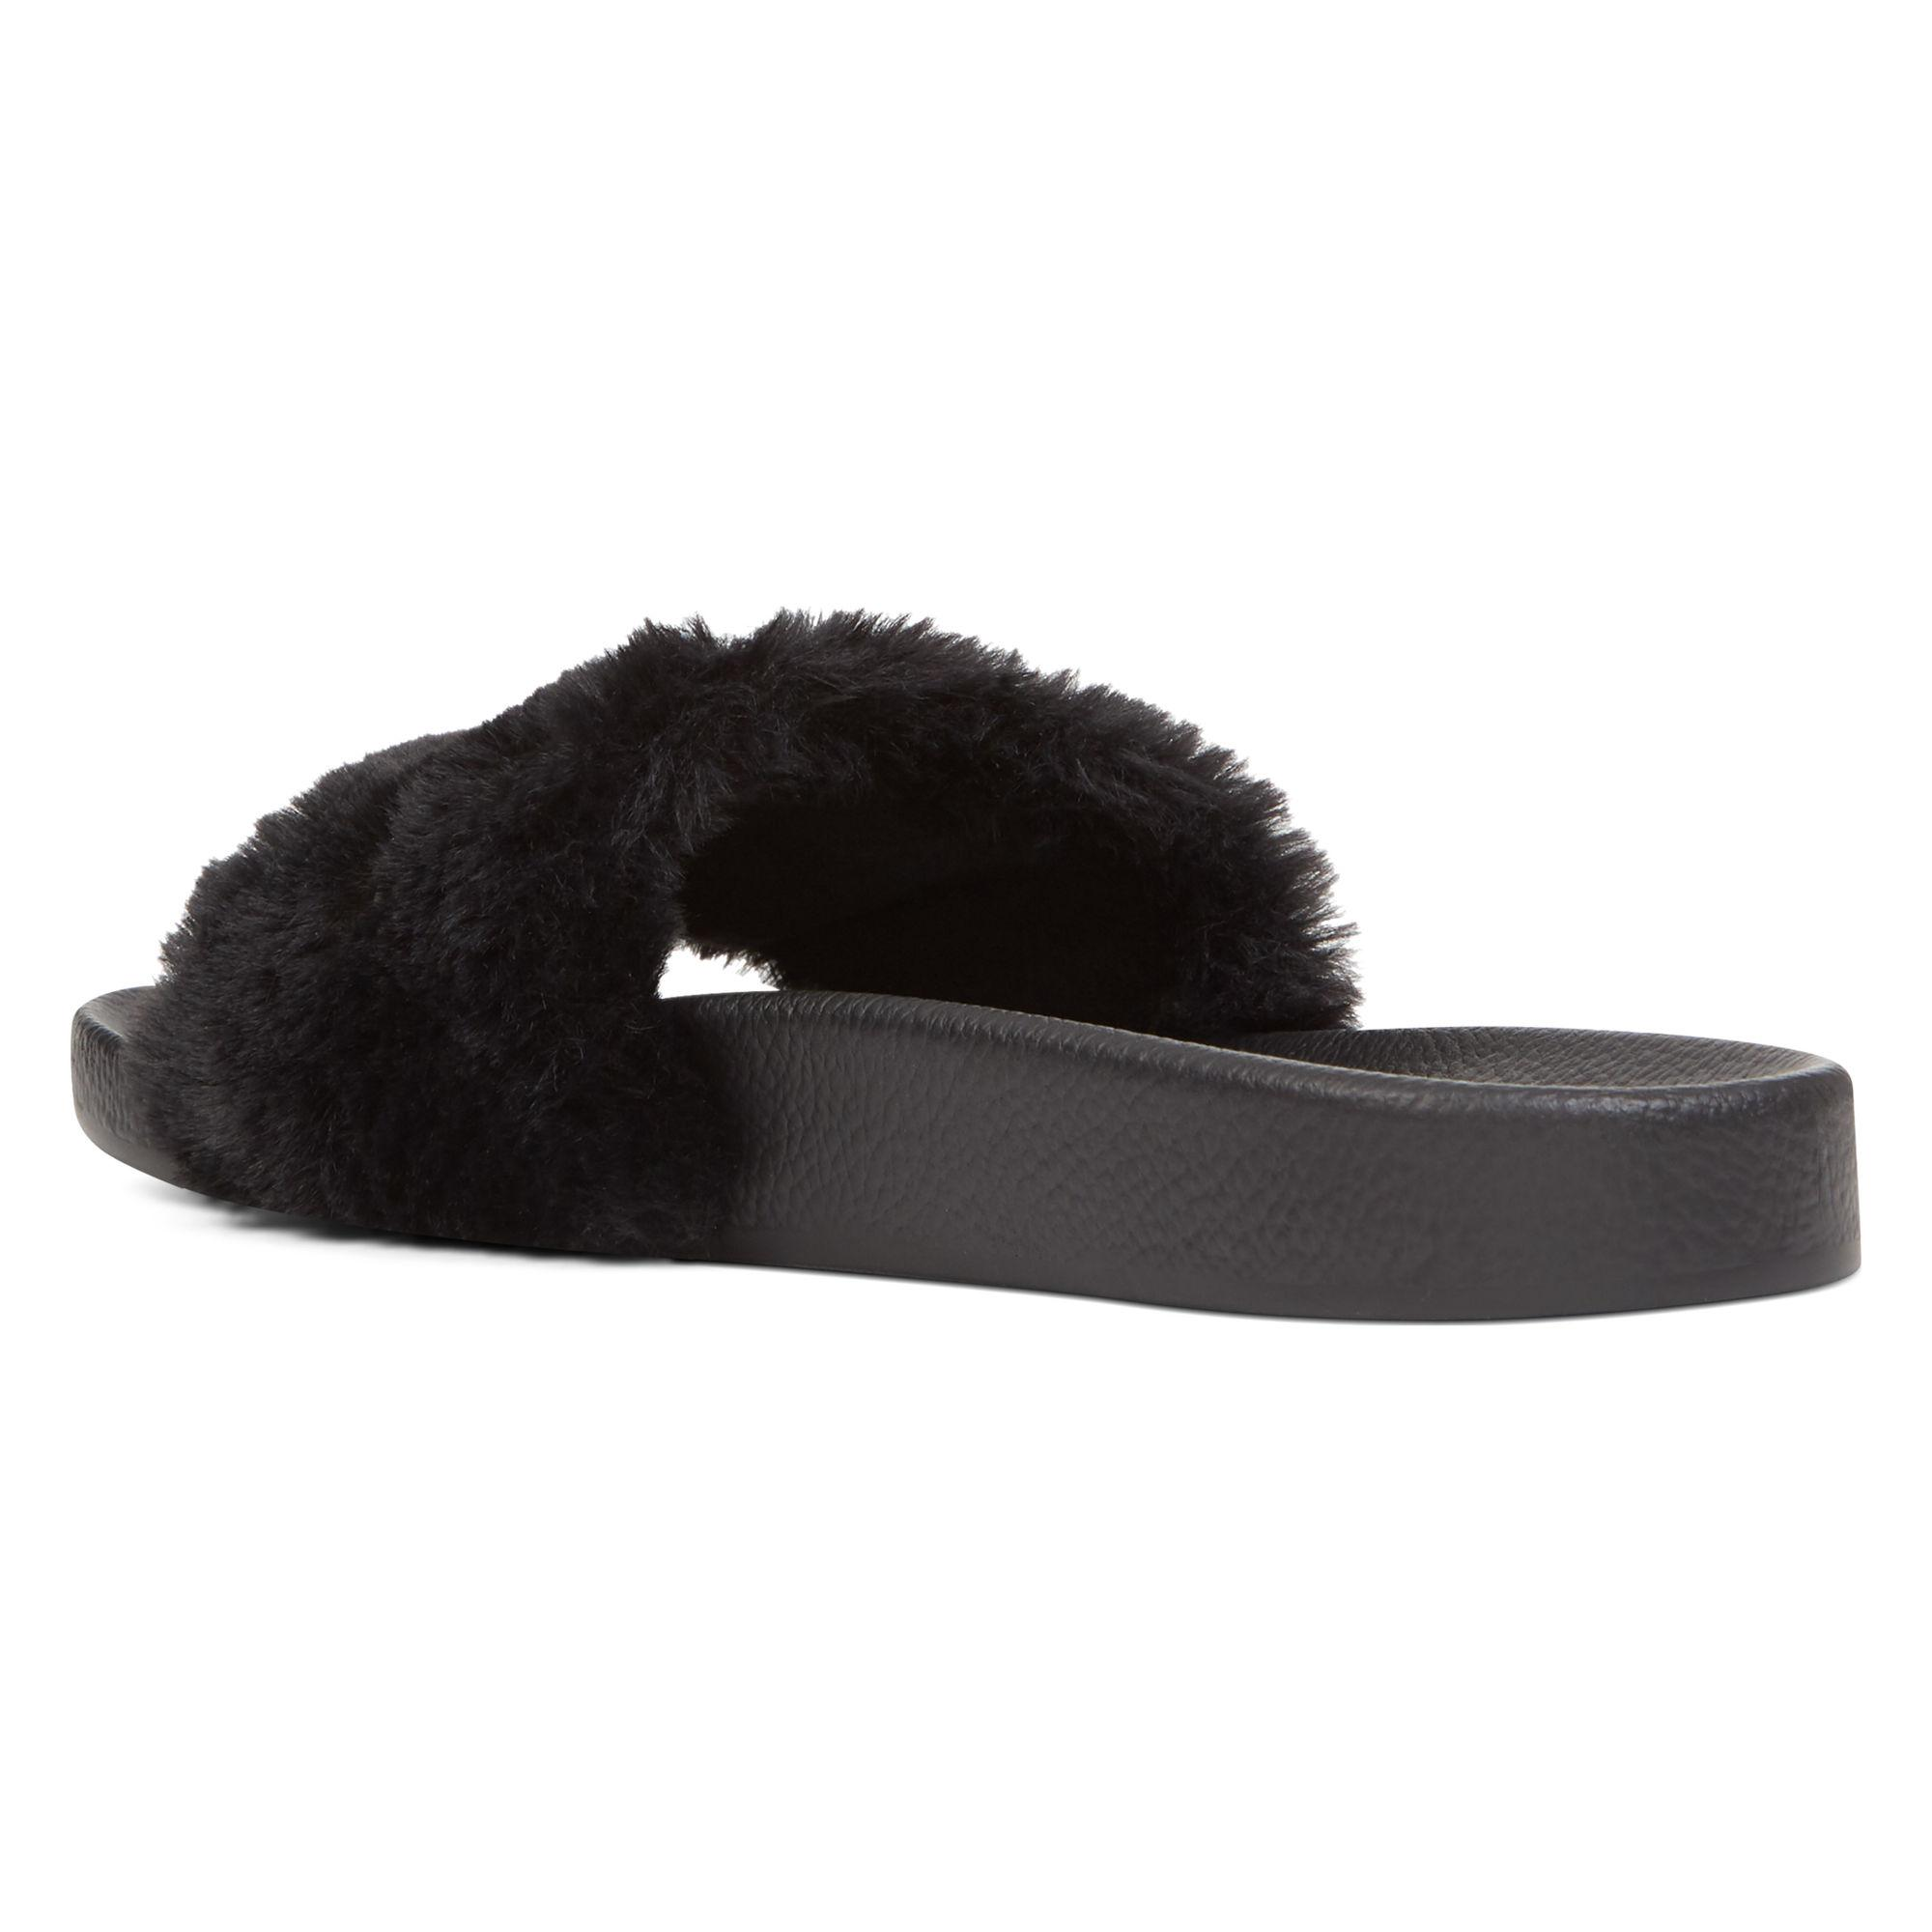 1d4f4482b3b Lyst - Nine West Sheslides Slippers in Black